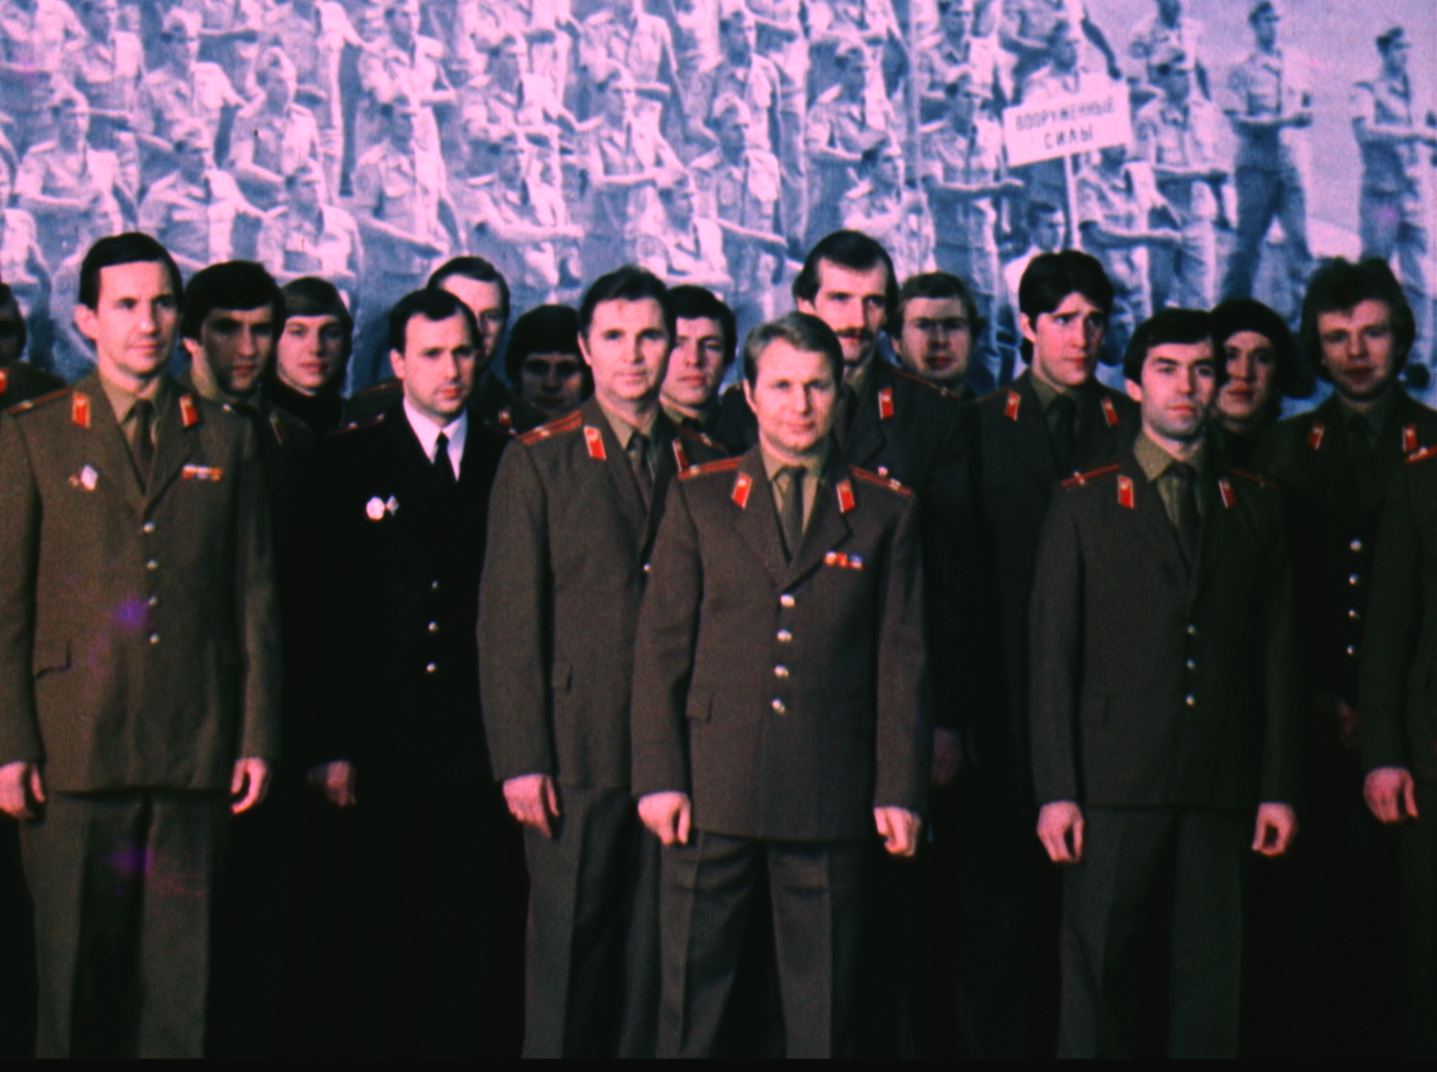 The USSR ice hockey national team in their official army uniforms